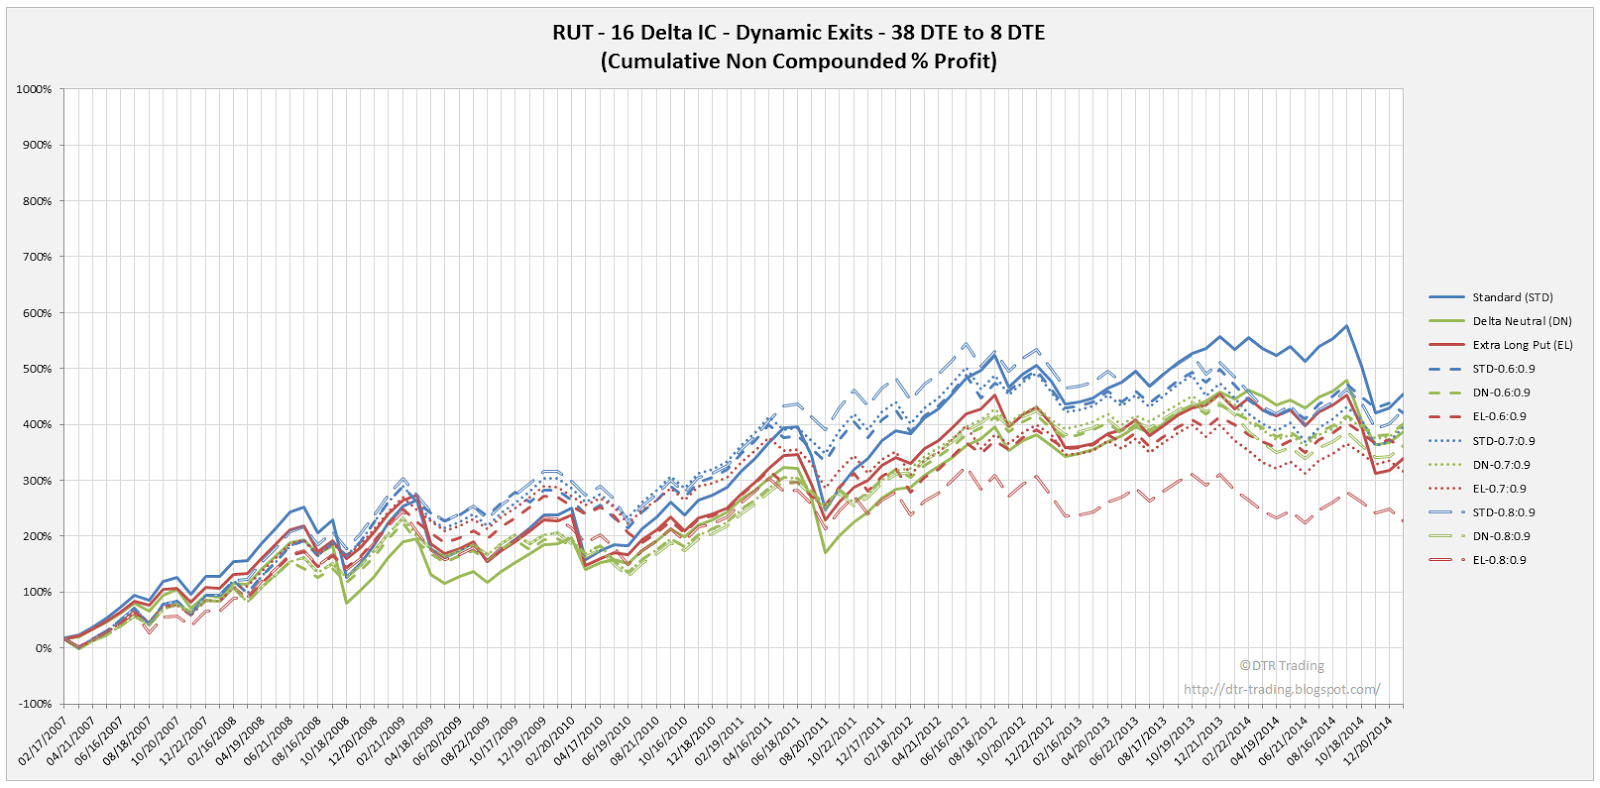 Iron Condor Dynamic Exit Equity Curves RUT 38 DTE 16 Delta Risk:Reward Versions